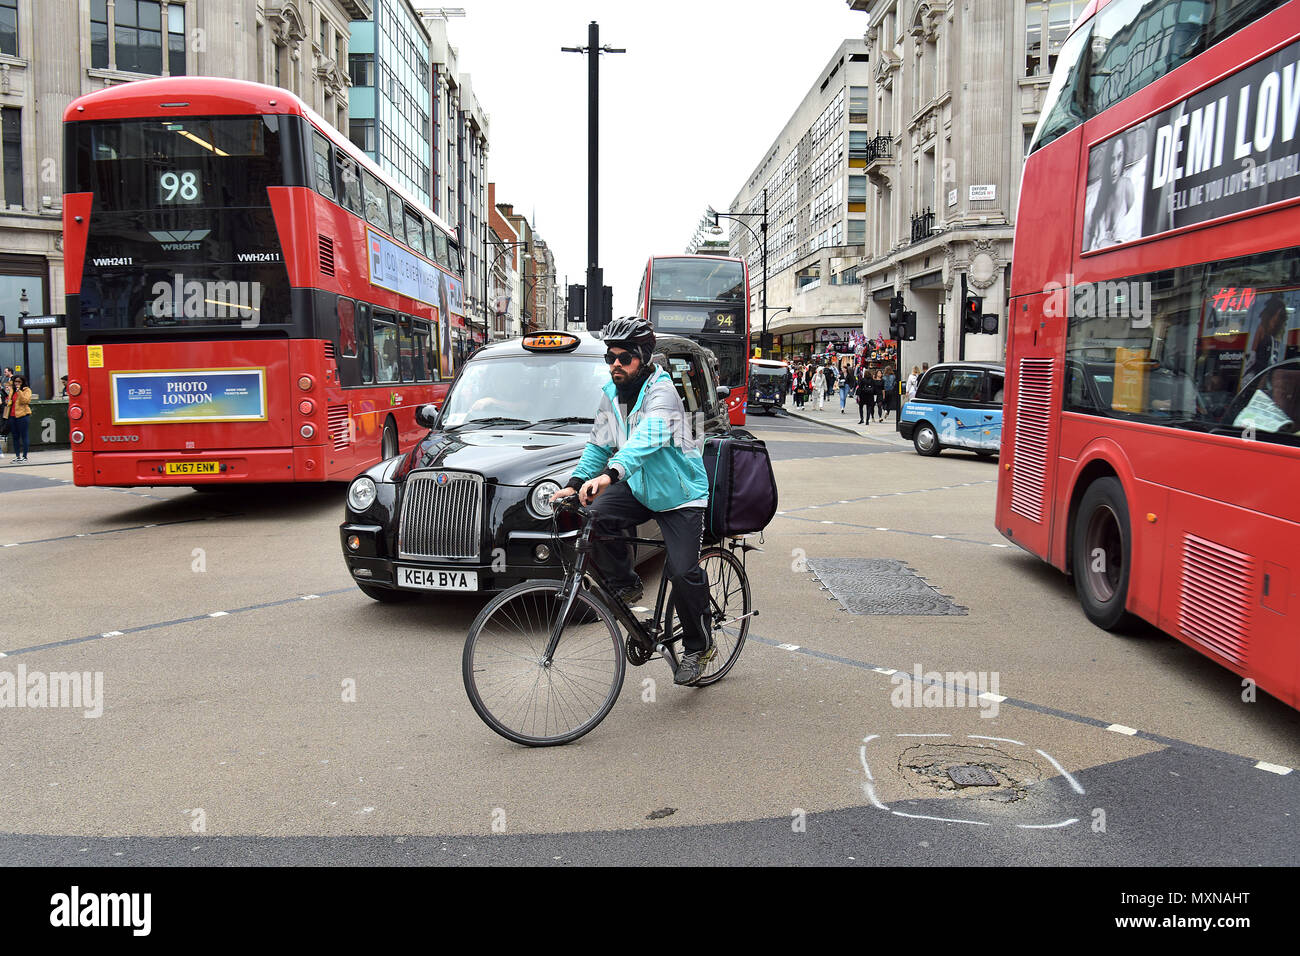 A Deliveroo delivery rider on his bicycle negotiates the Oxford Circus road junction, central London. - Stock Image